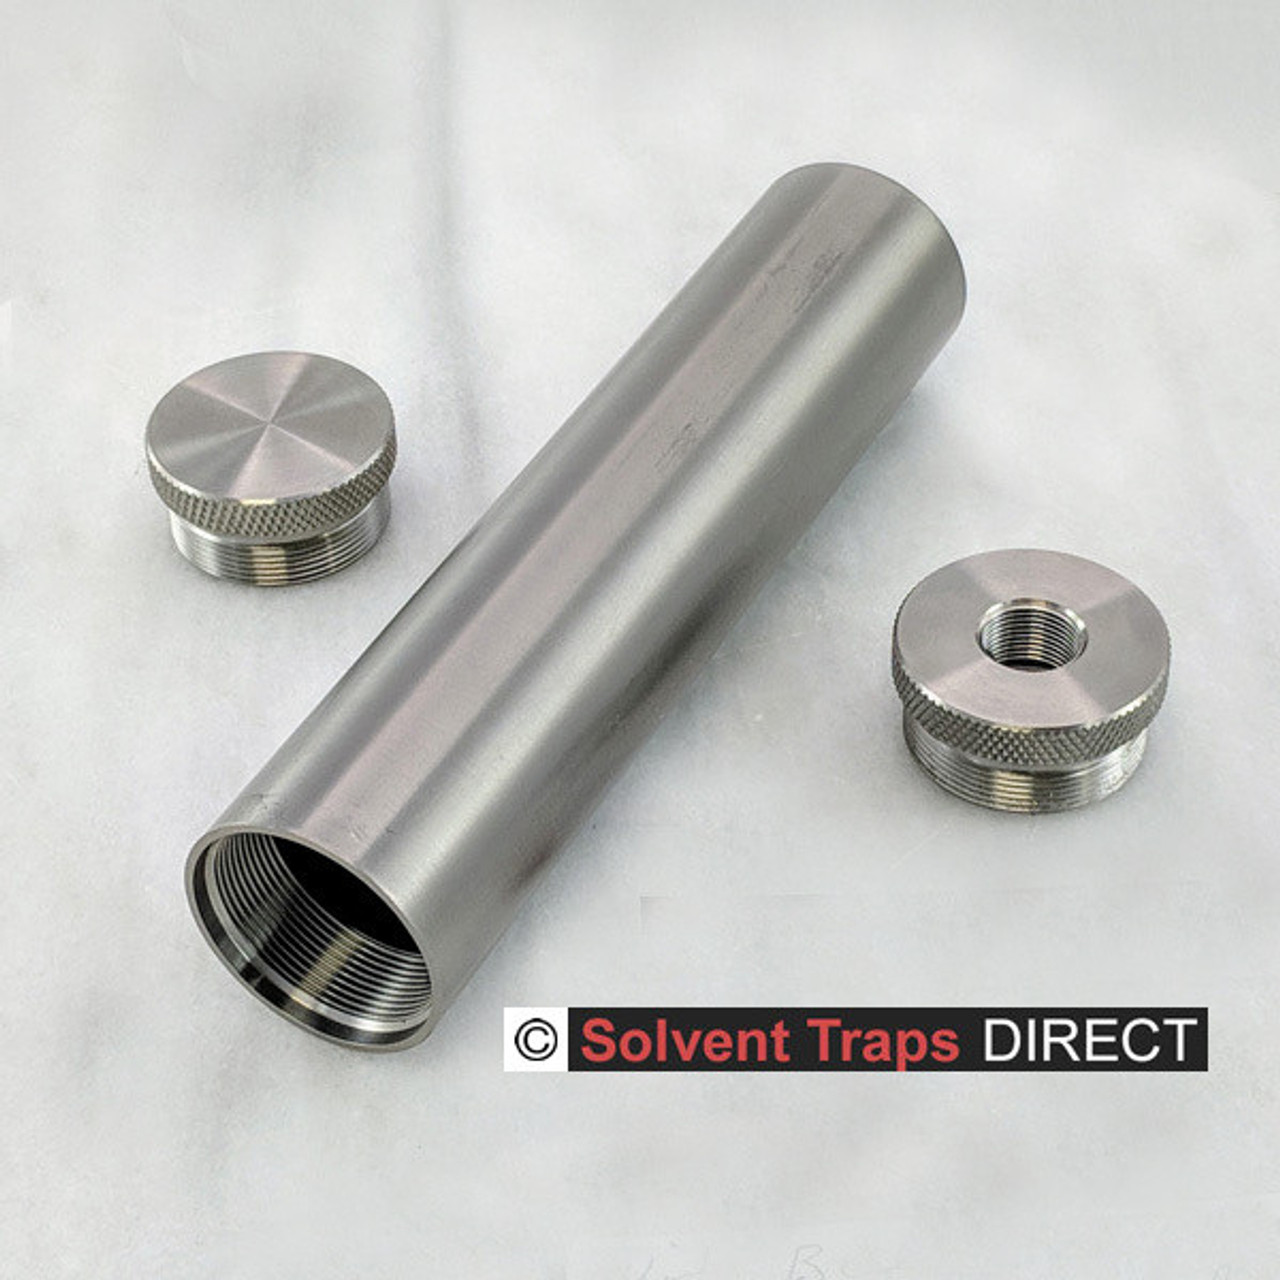 B-Cell Titanium Solvent Trap Kit 6 inch 1-2 X 28